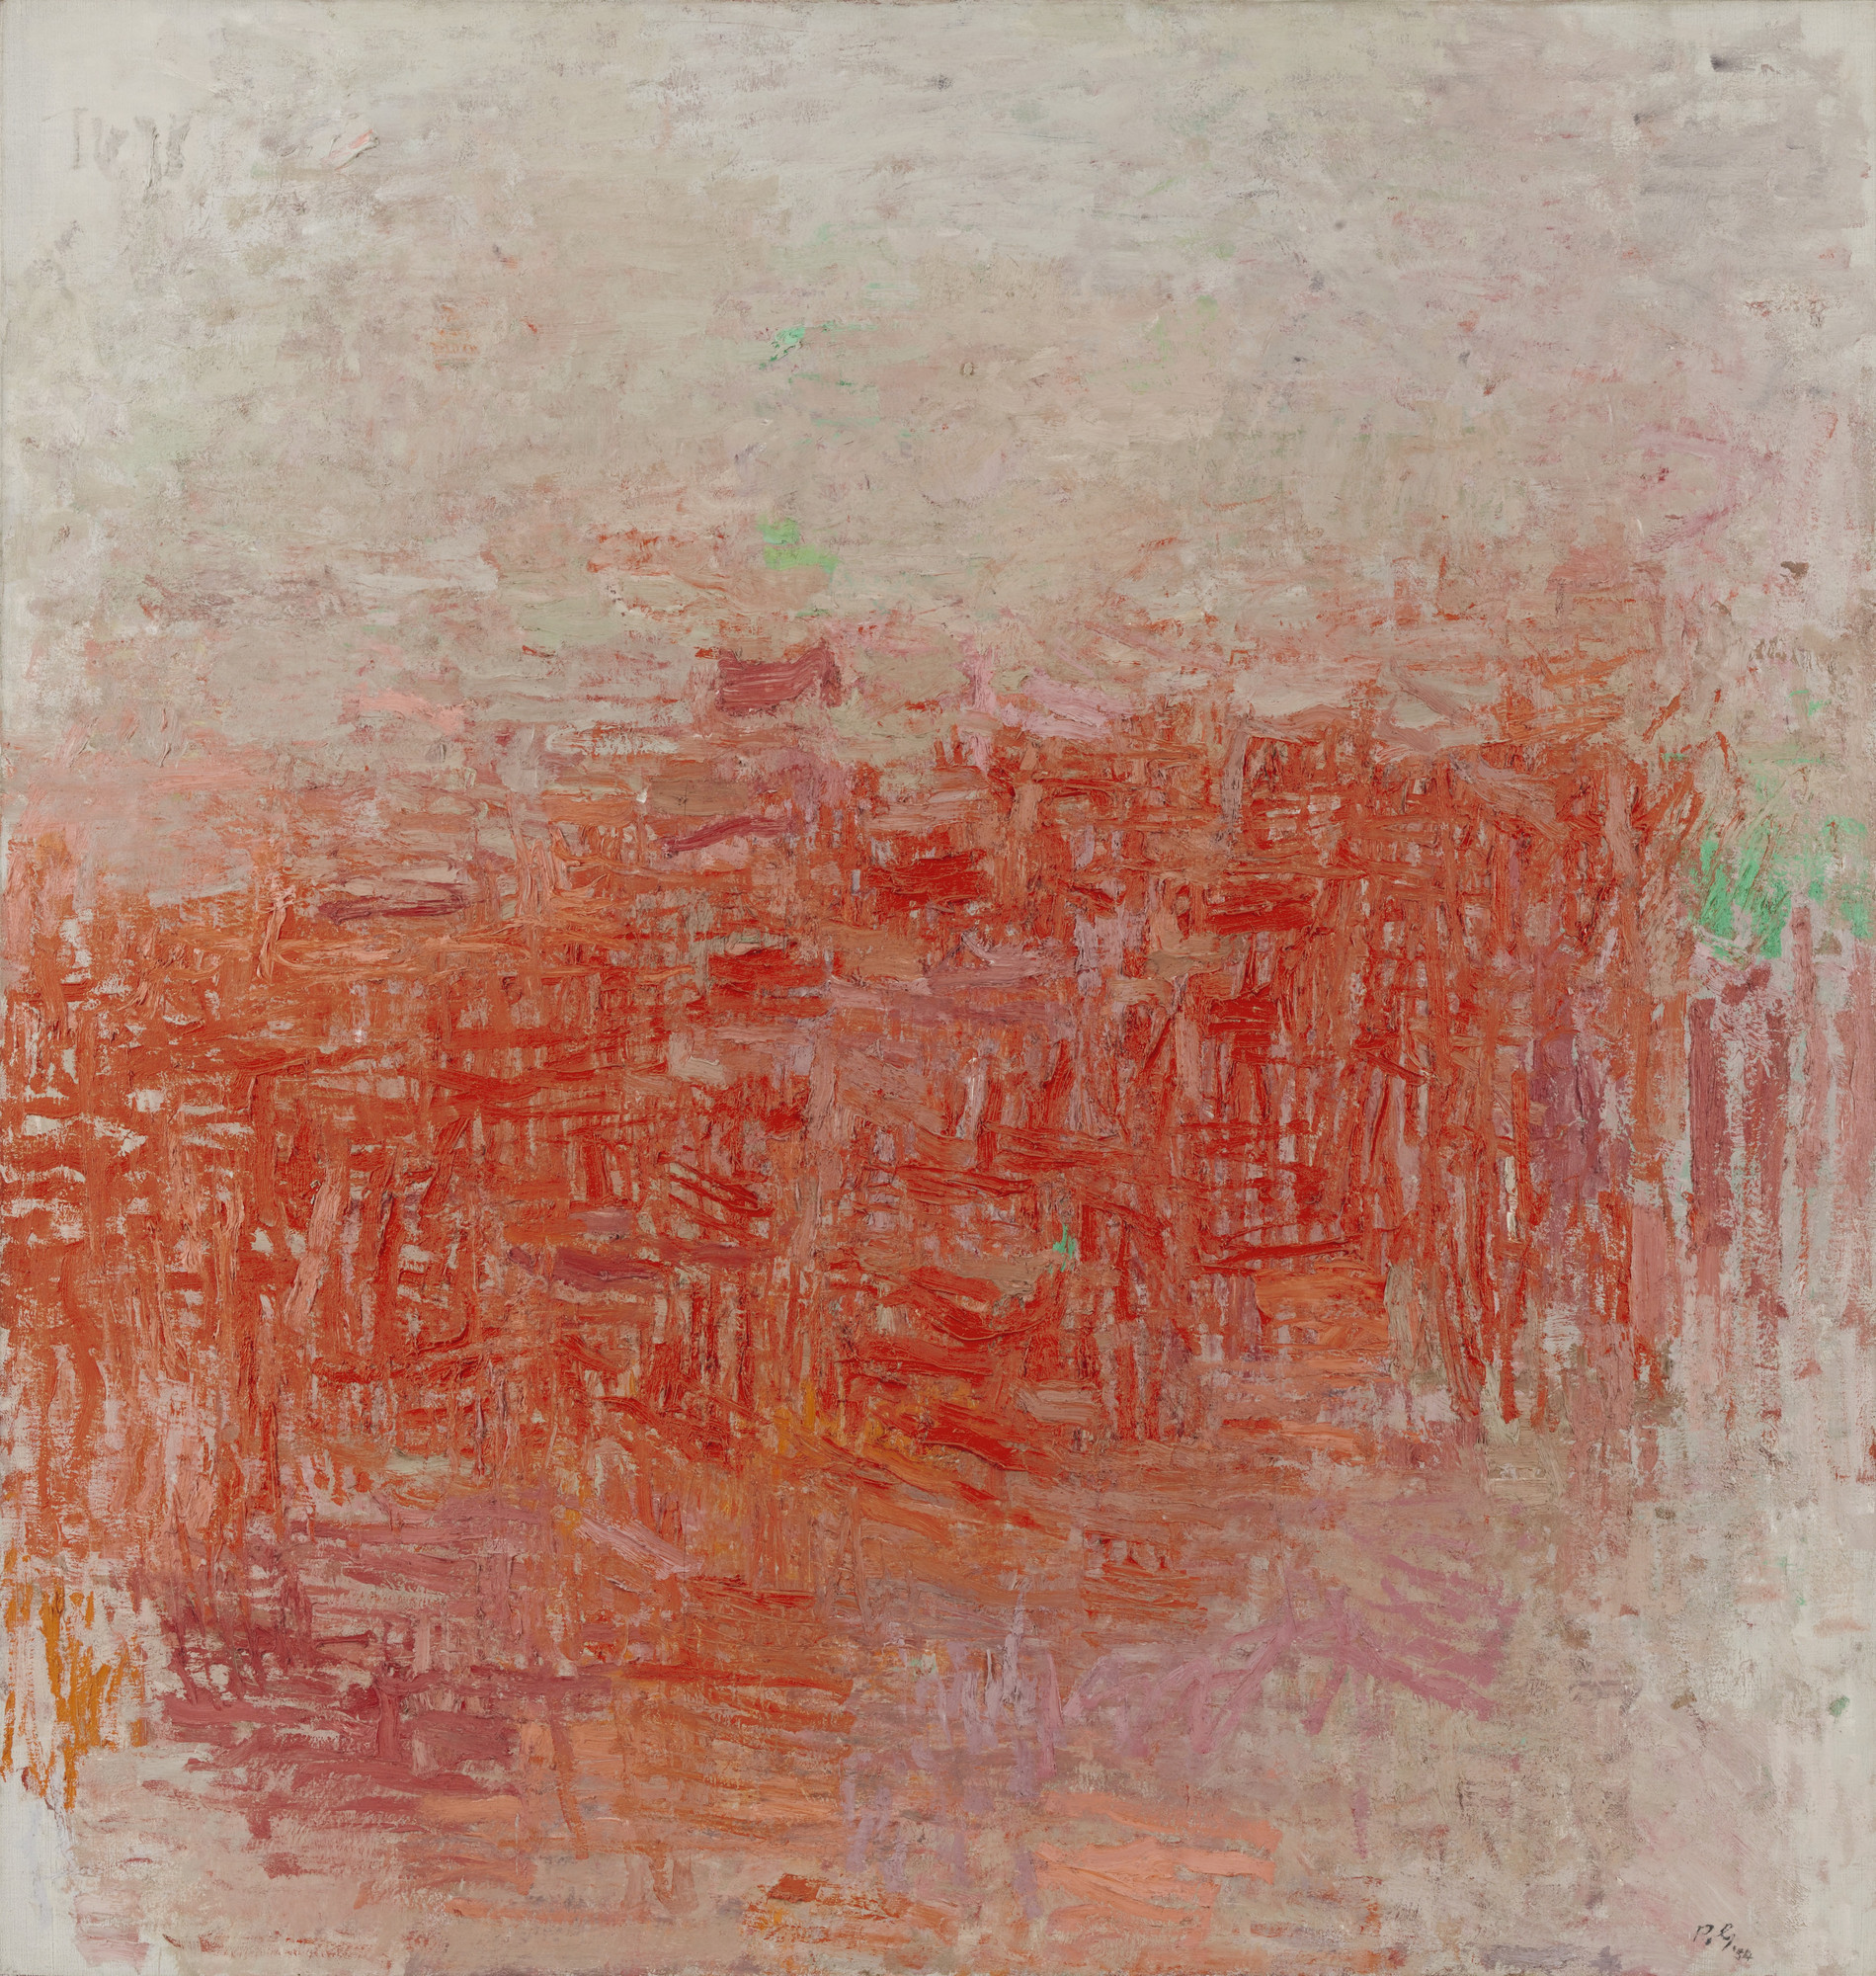 Philip Guston. Painting. 1954